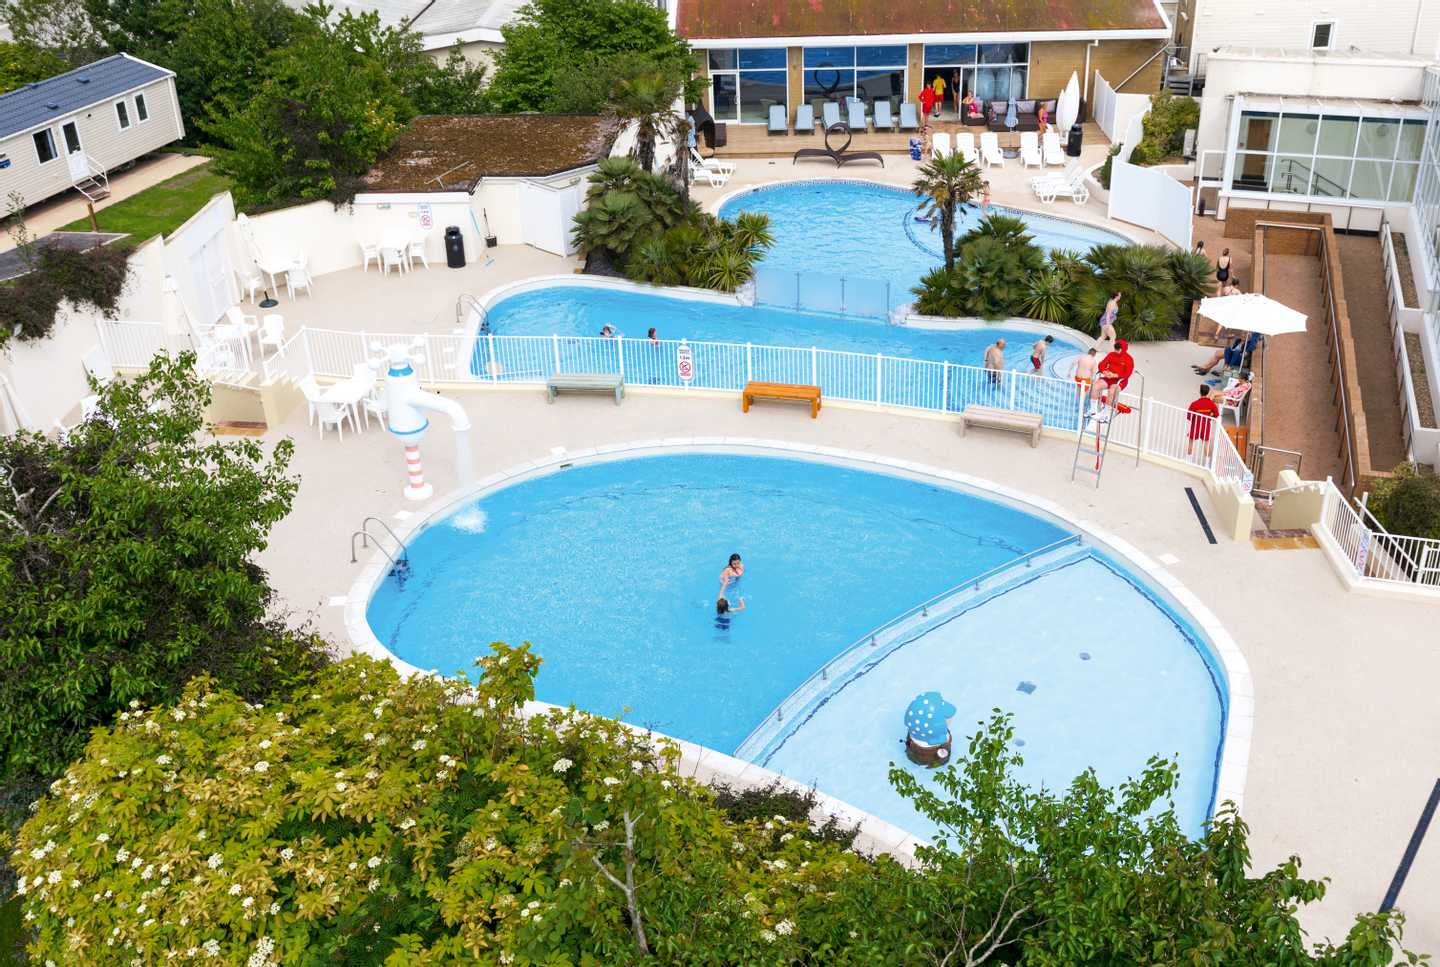 Birds eye view of the multi-level outdoor pool